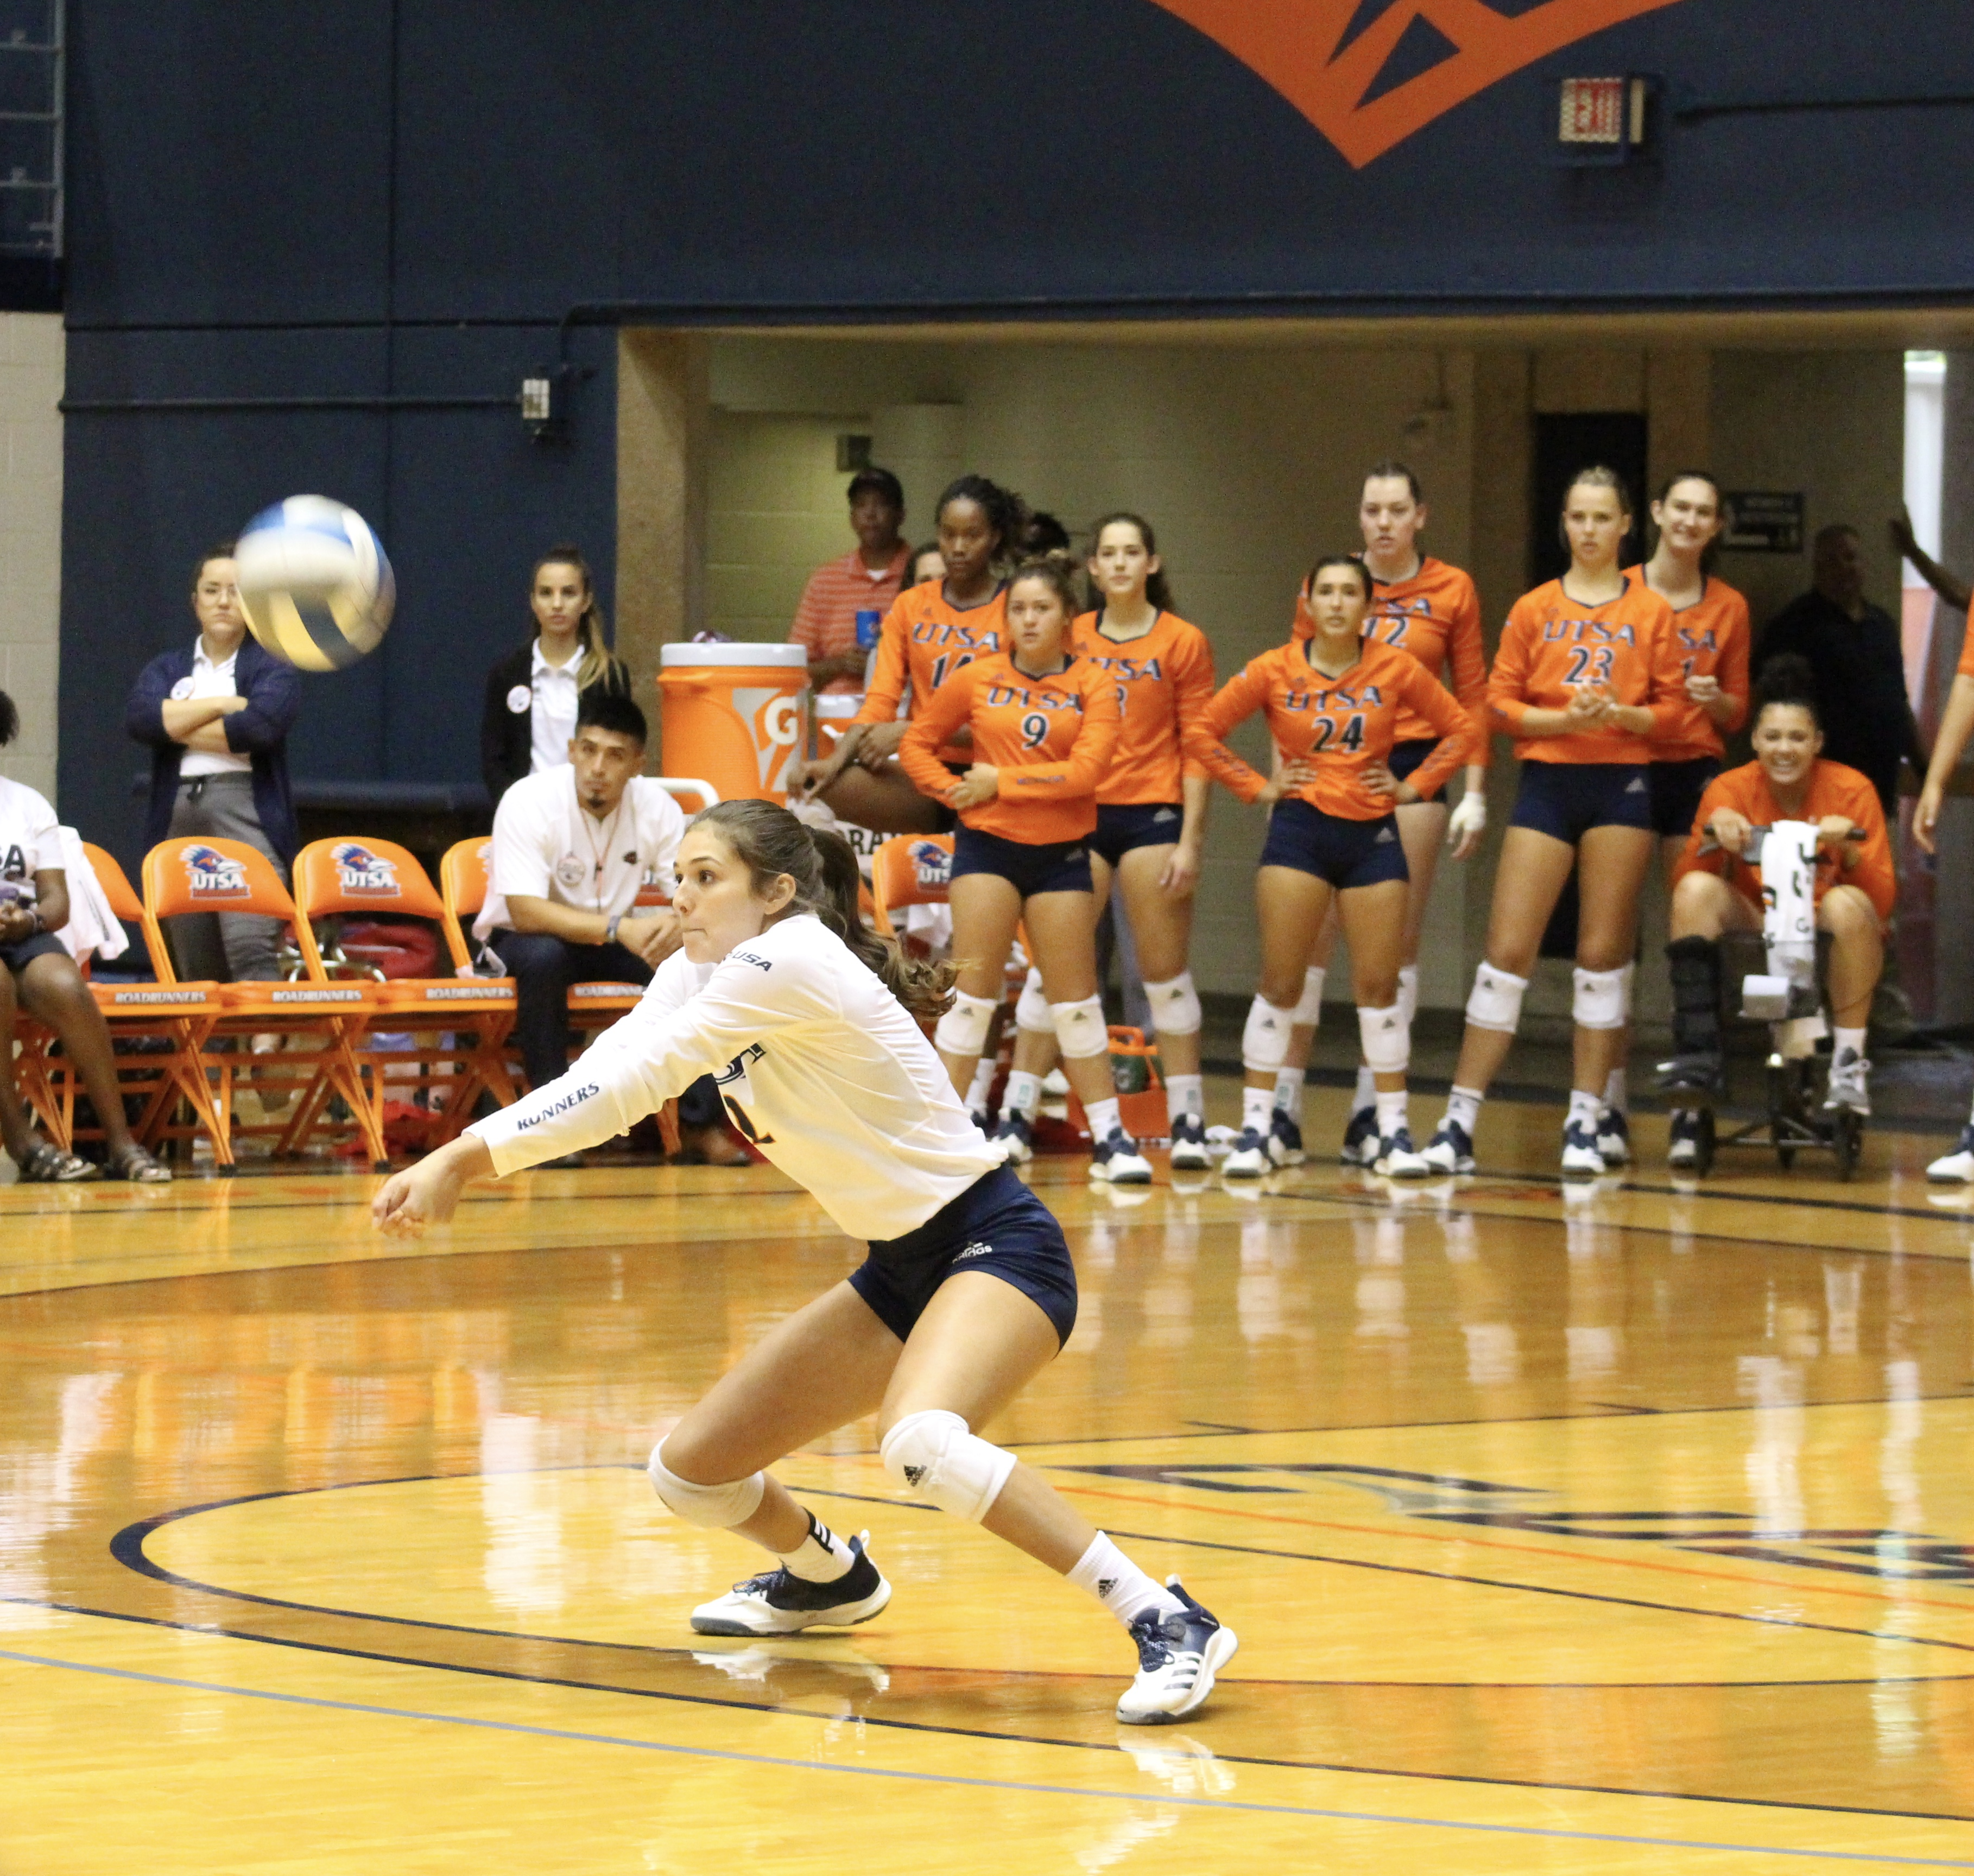 Emily Ramirez passing the ball to the setter. Photo by Julia Maeinus